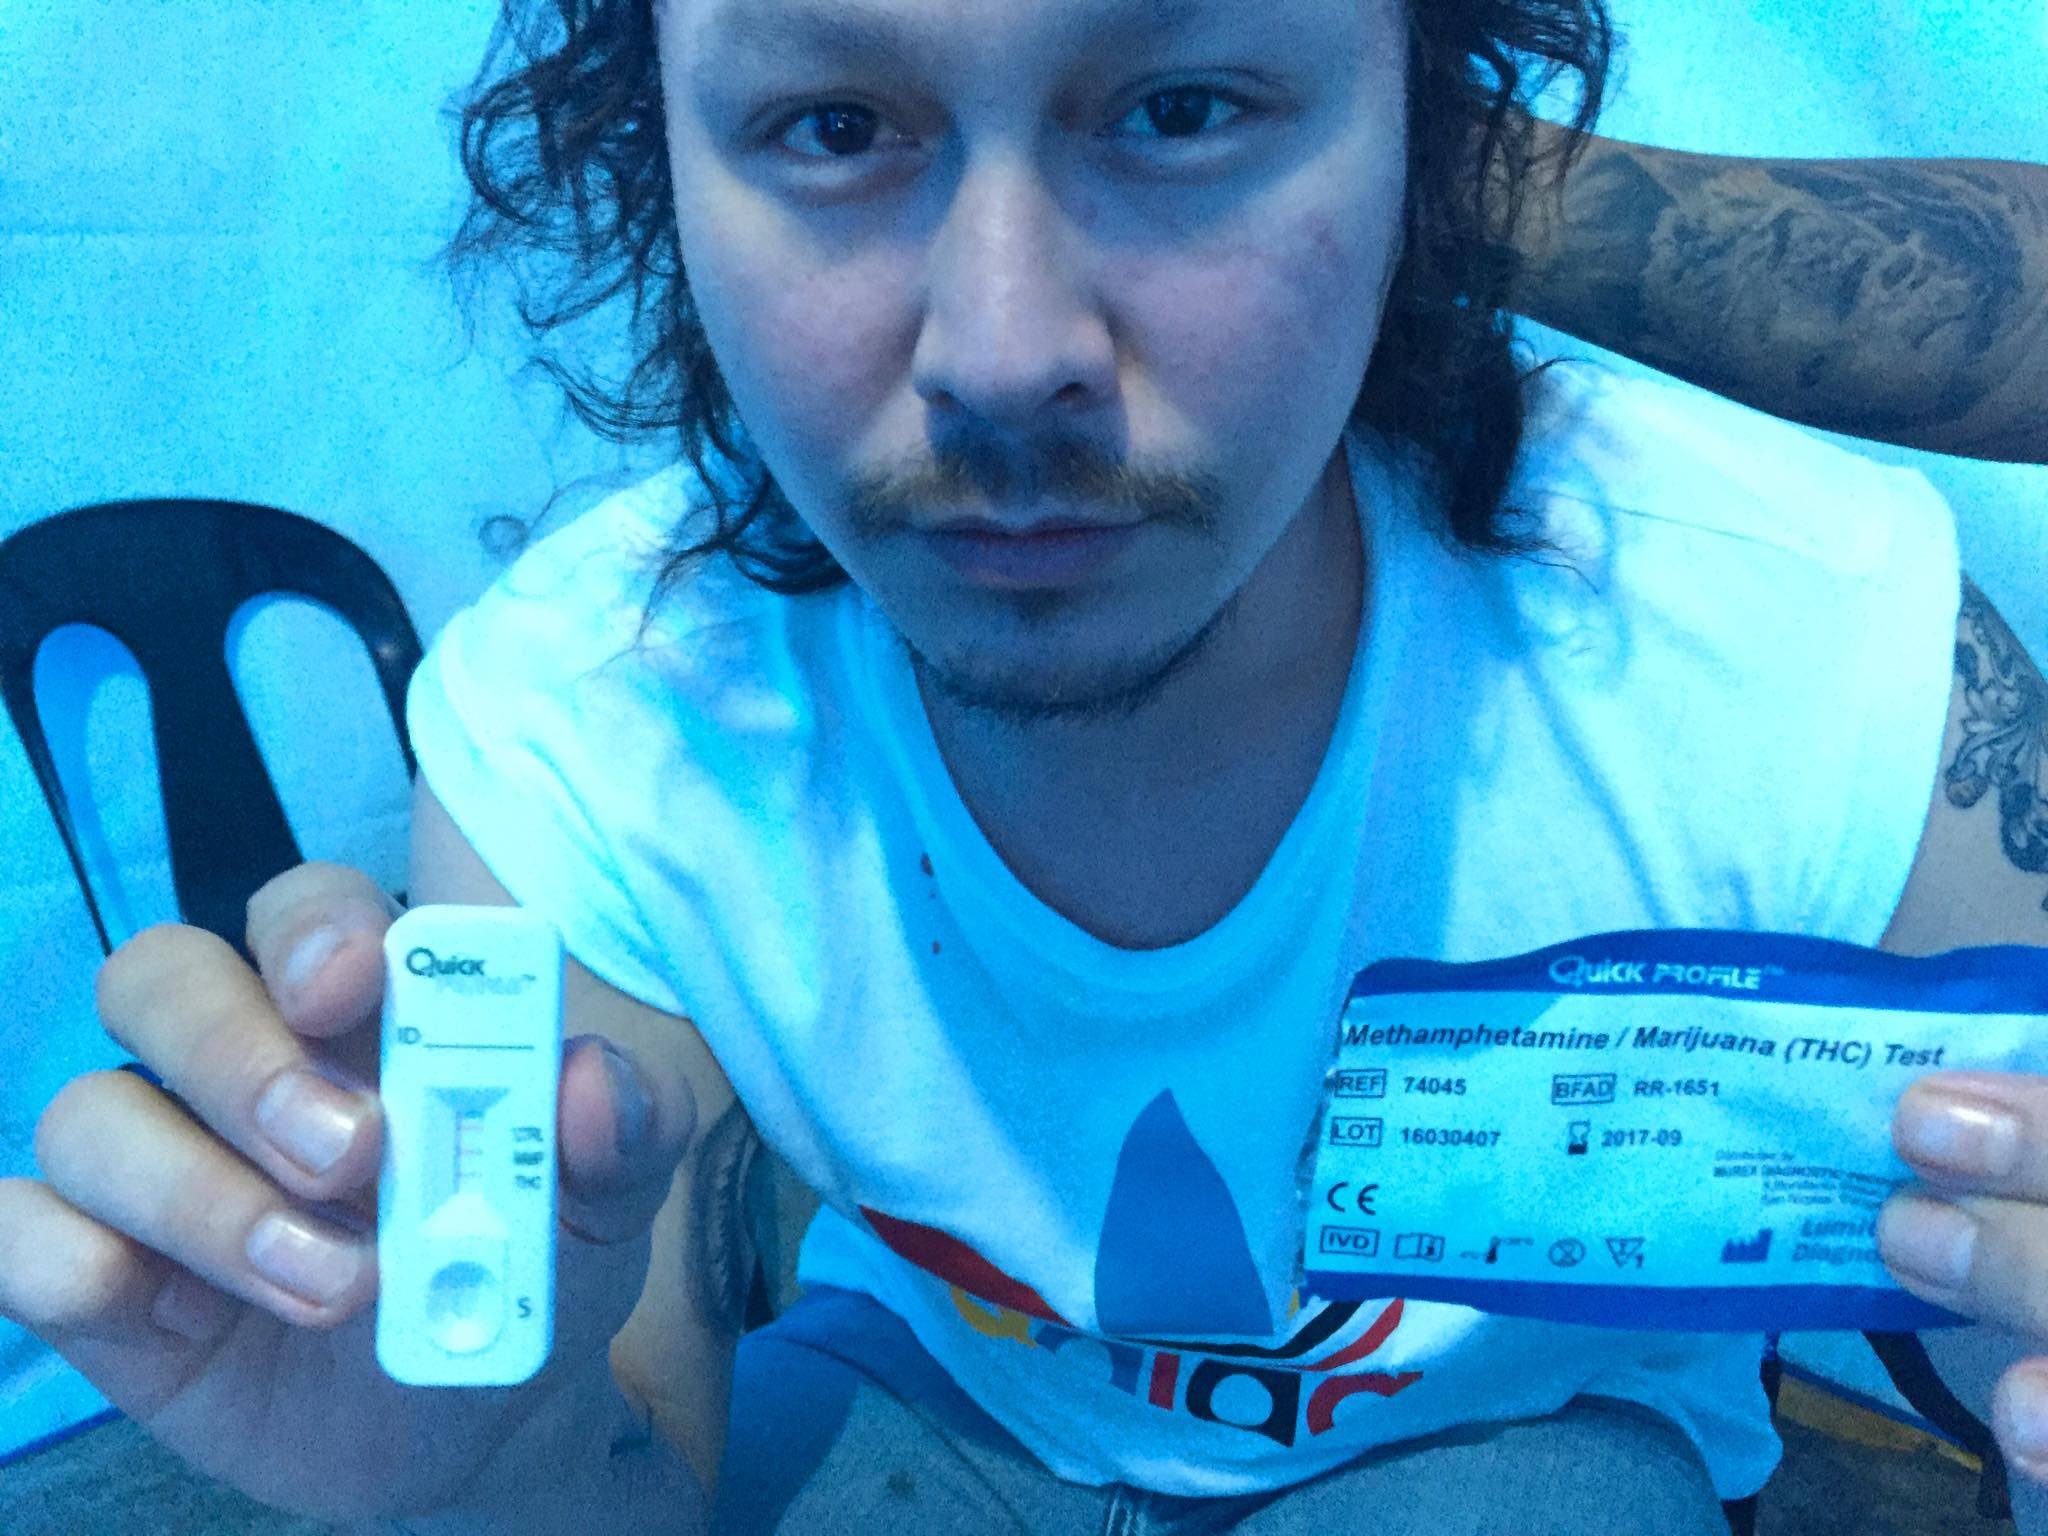 LOOK- Baron Geisler Conducts His Own Drug Test